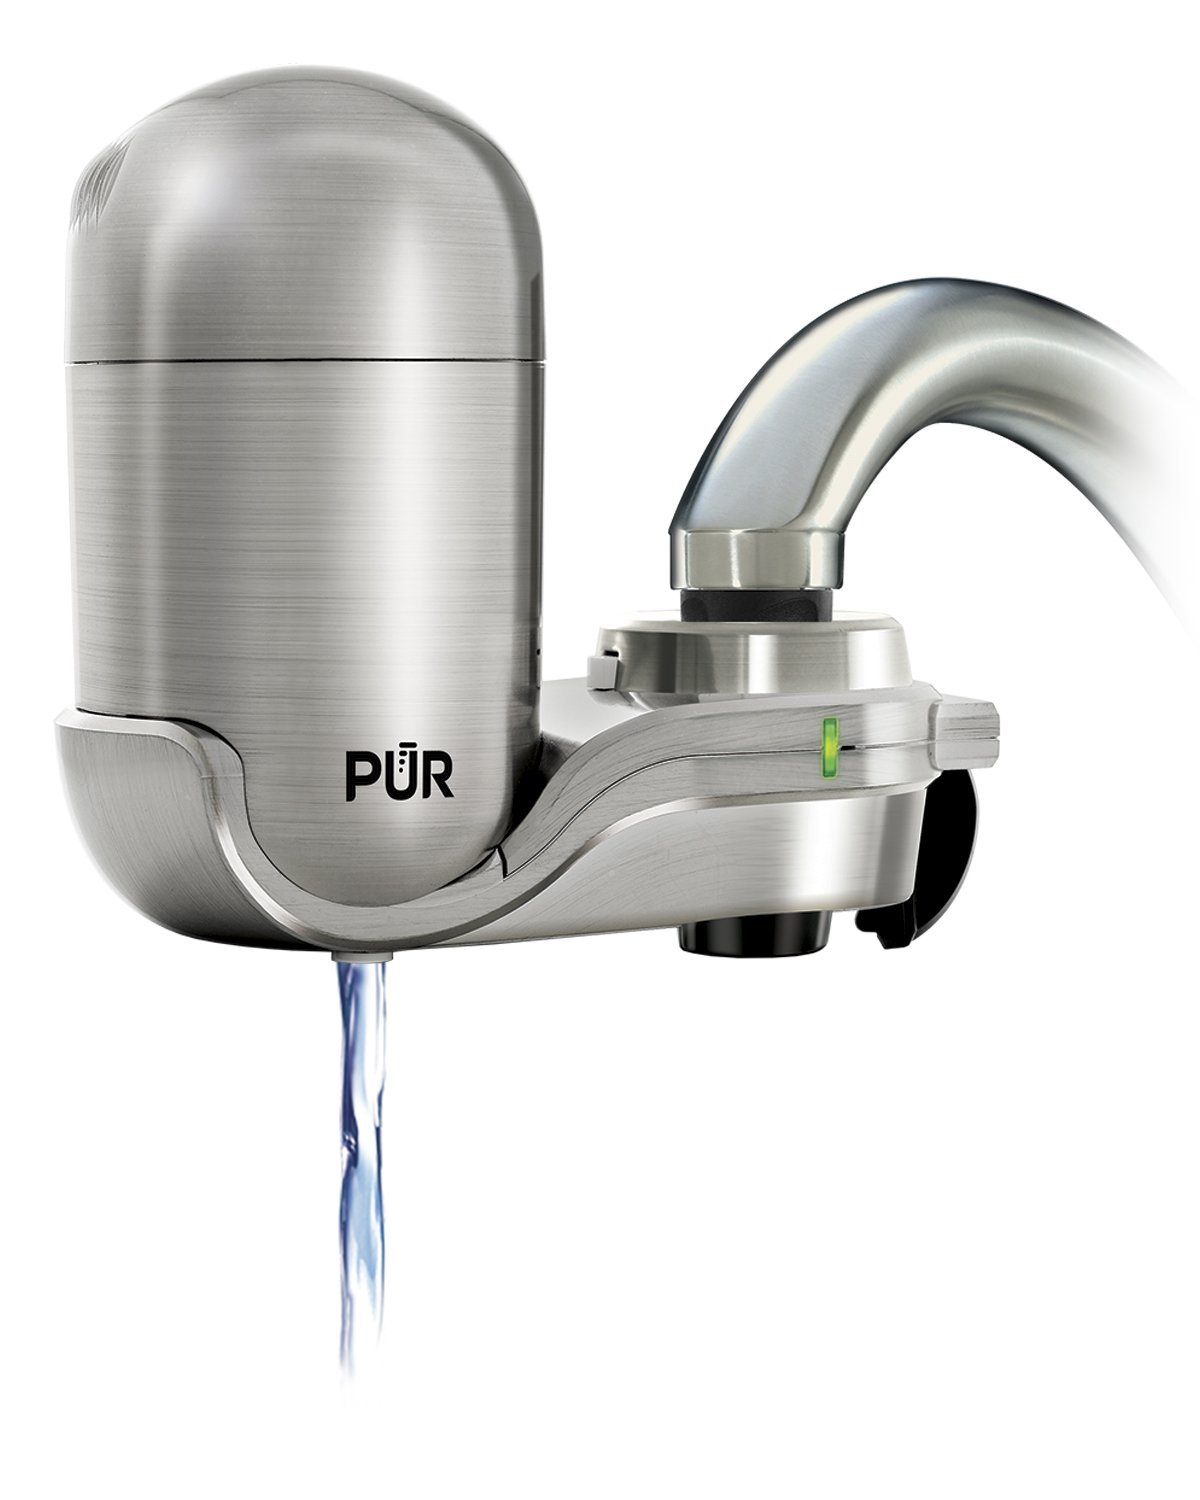 PUR PUR-0A1 Faucet Water Filter Stainless